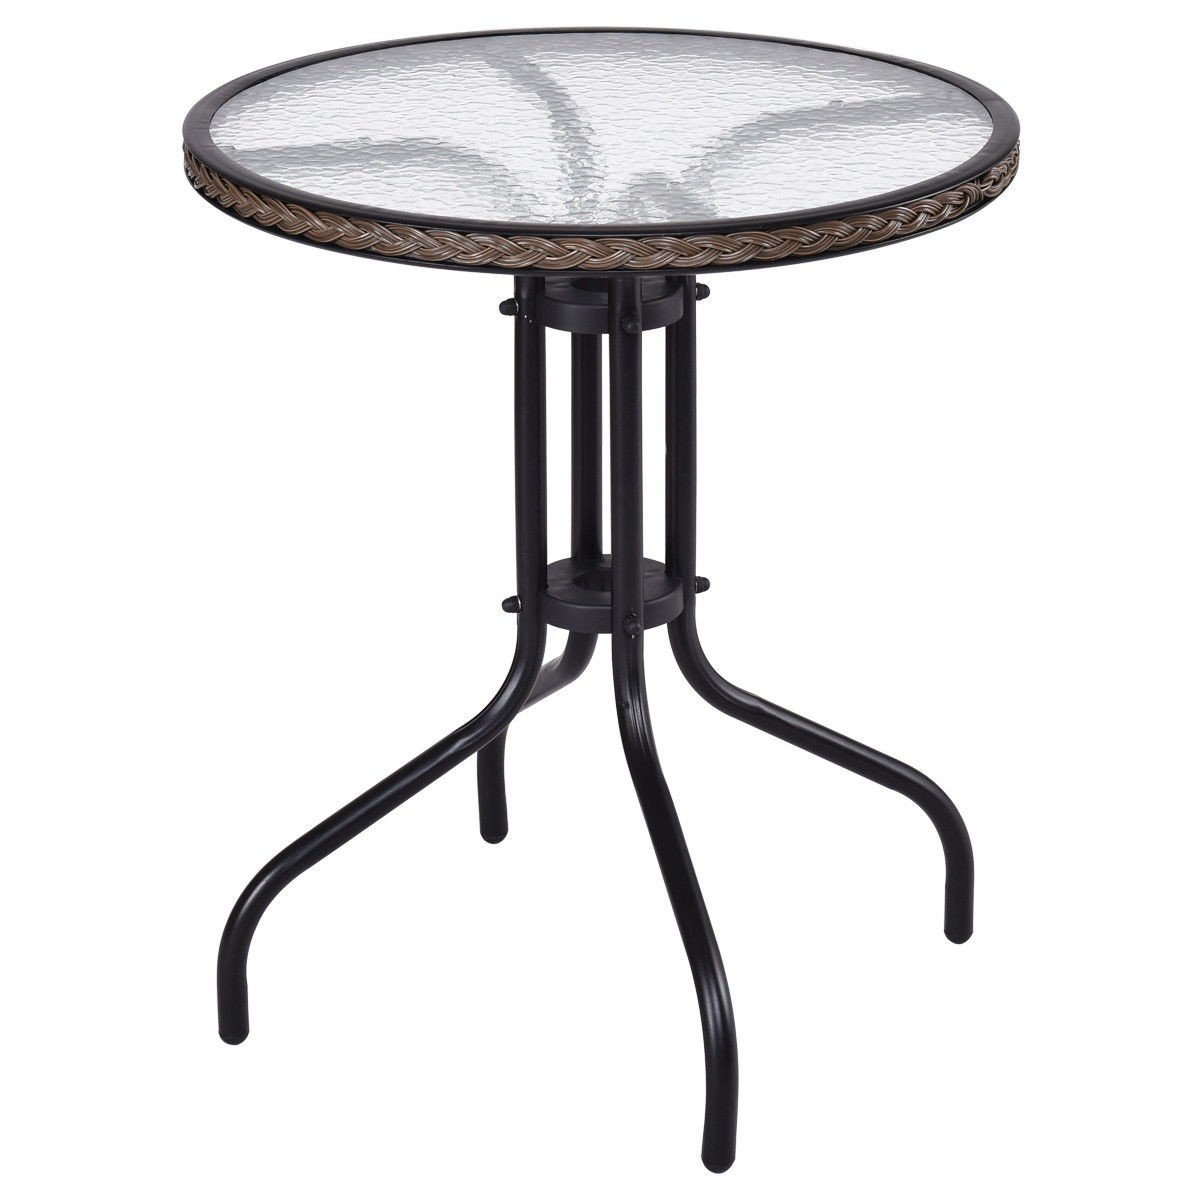 EnjoyShop 24'' Patio Furniture Glass Top Patio Round Table Steel Frame Dining Table